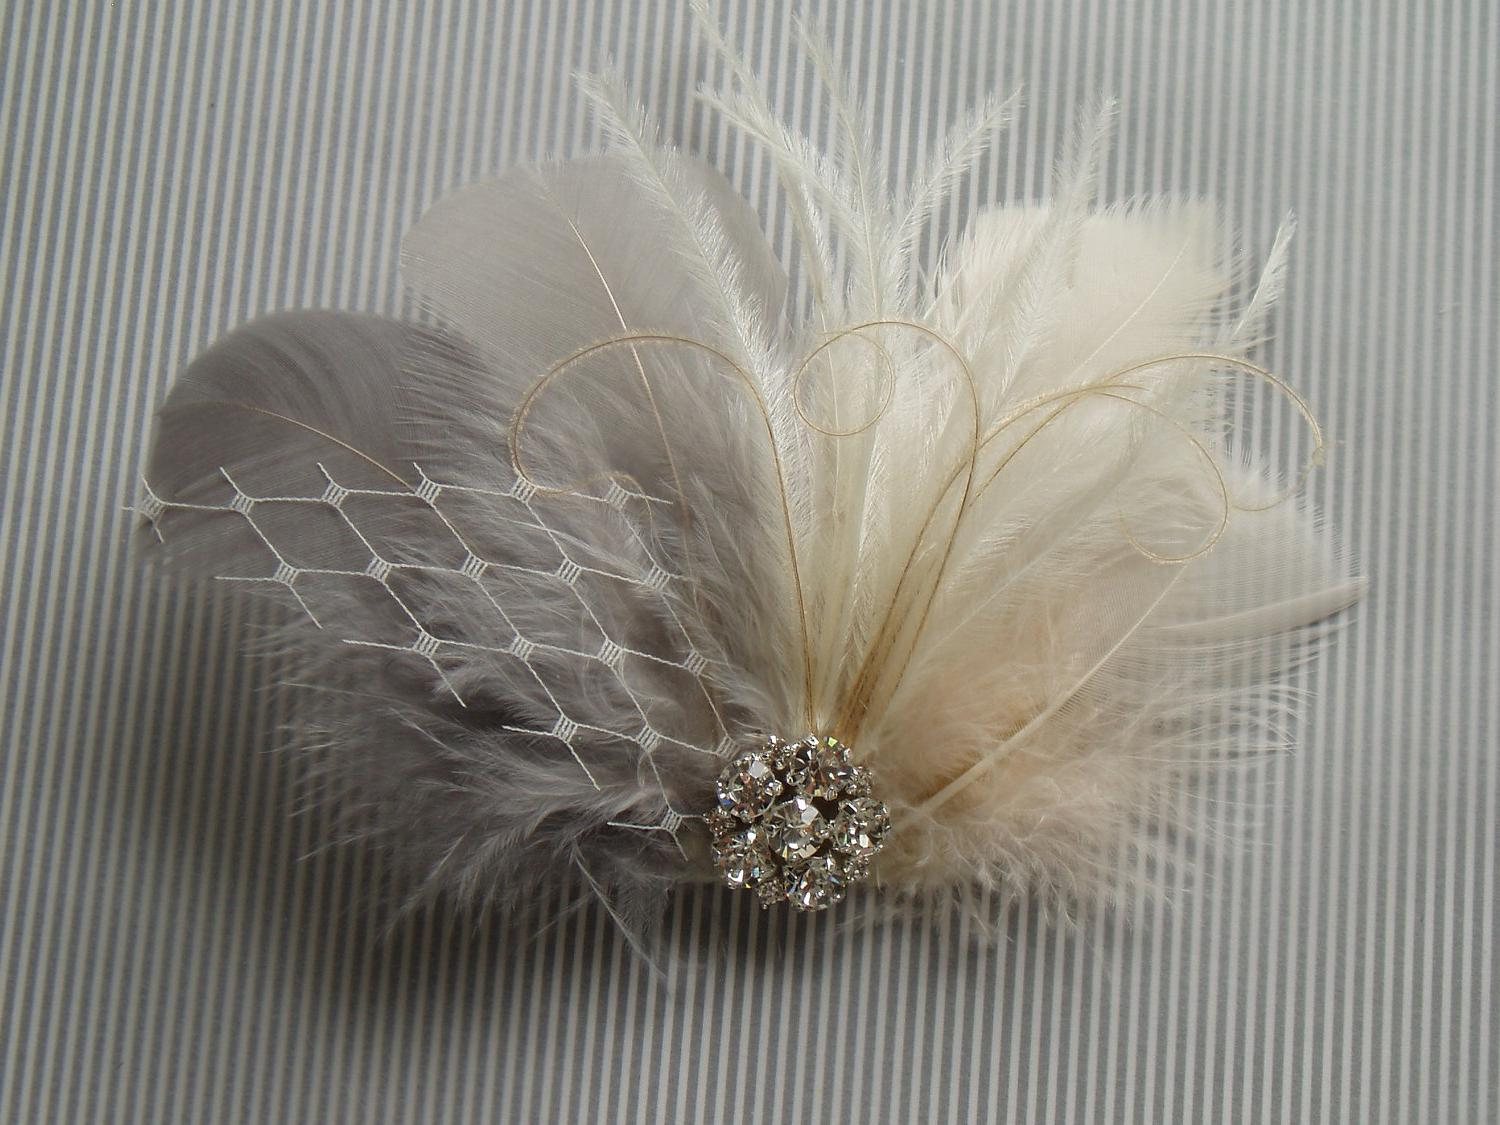 Feather Bridal Hair Clip - Ivory and Grey Fascinator with Rhinestone Jewel